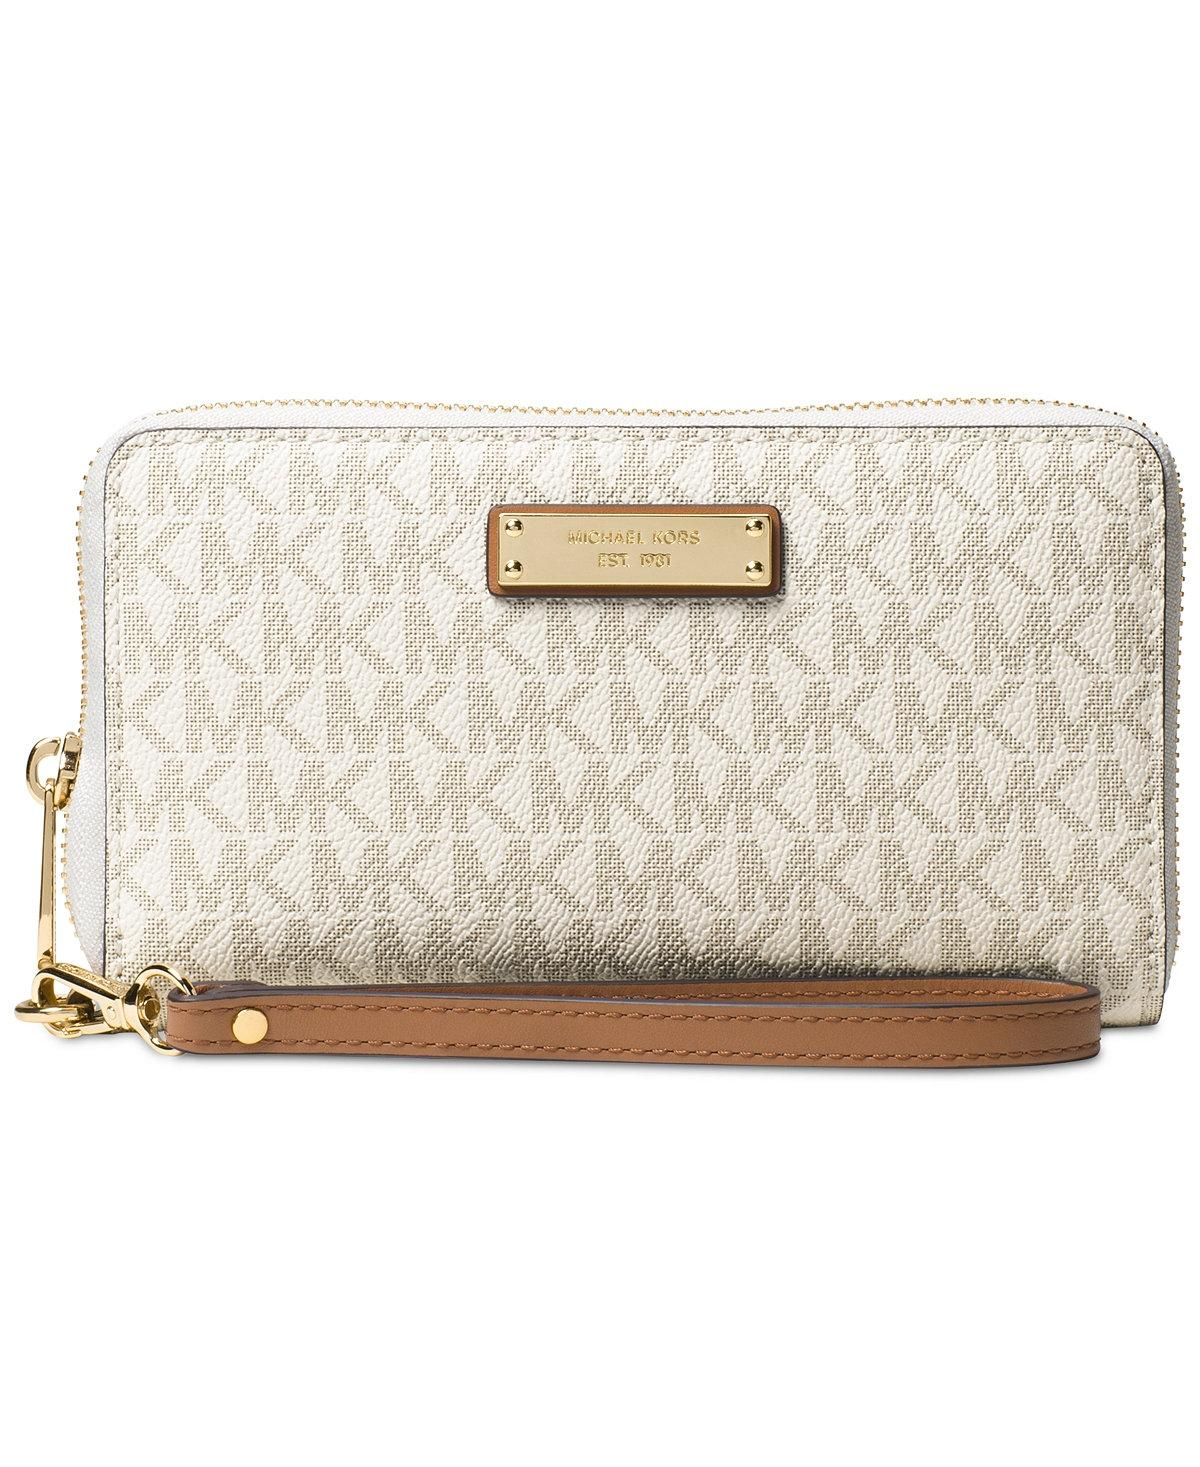 michael kors wallets on sale up to 80 off at tradesy